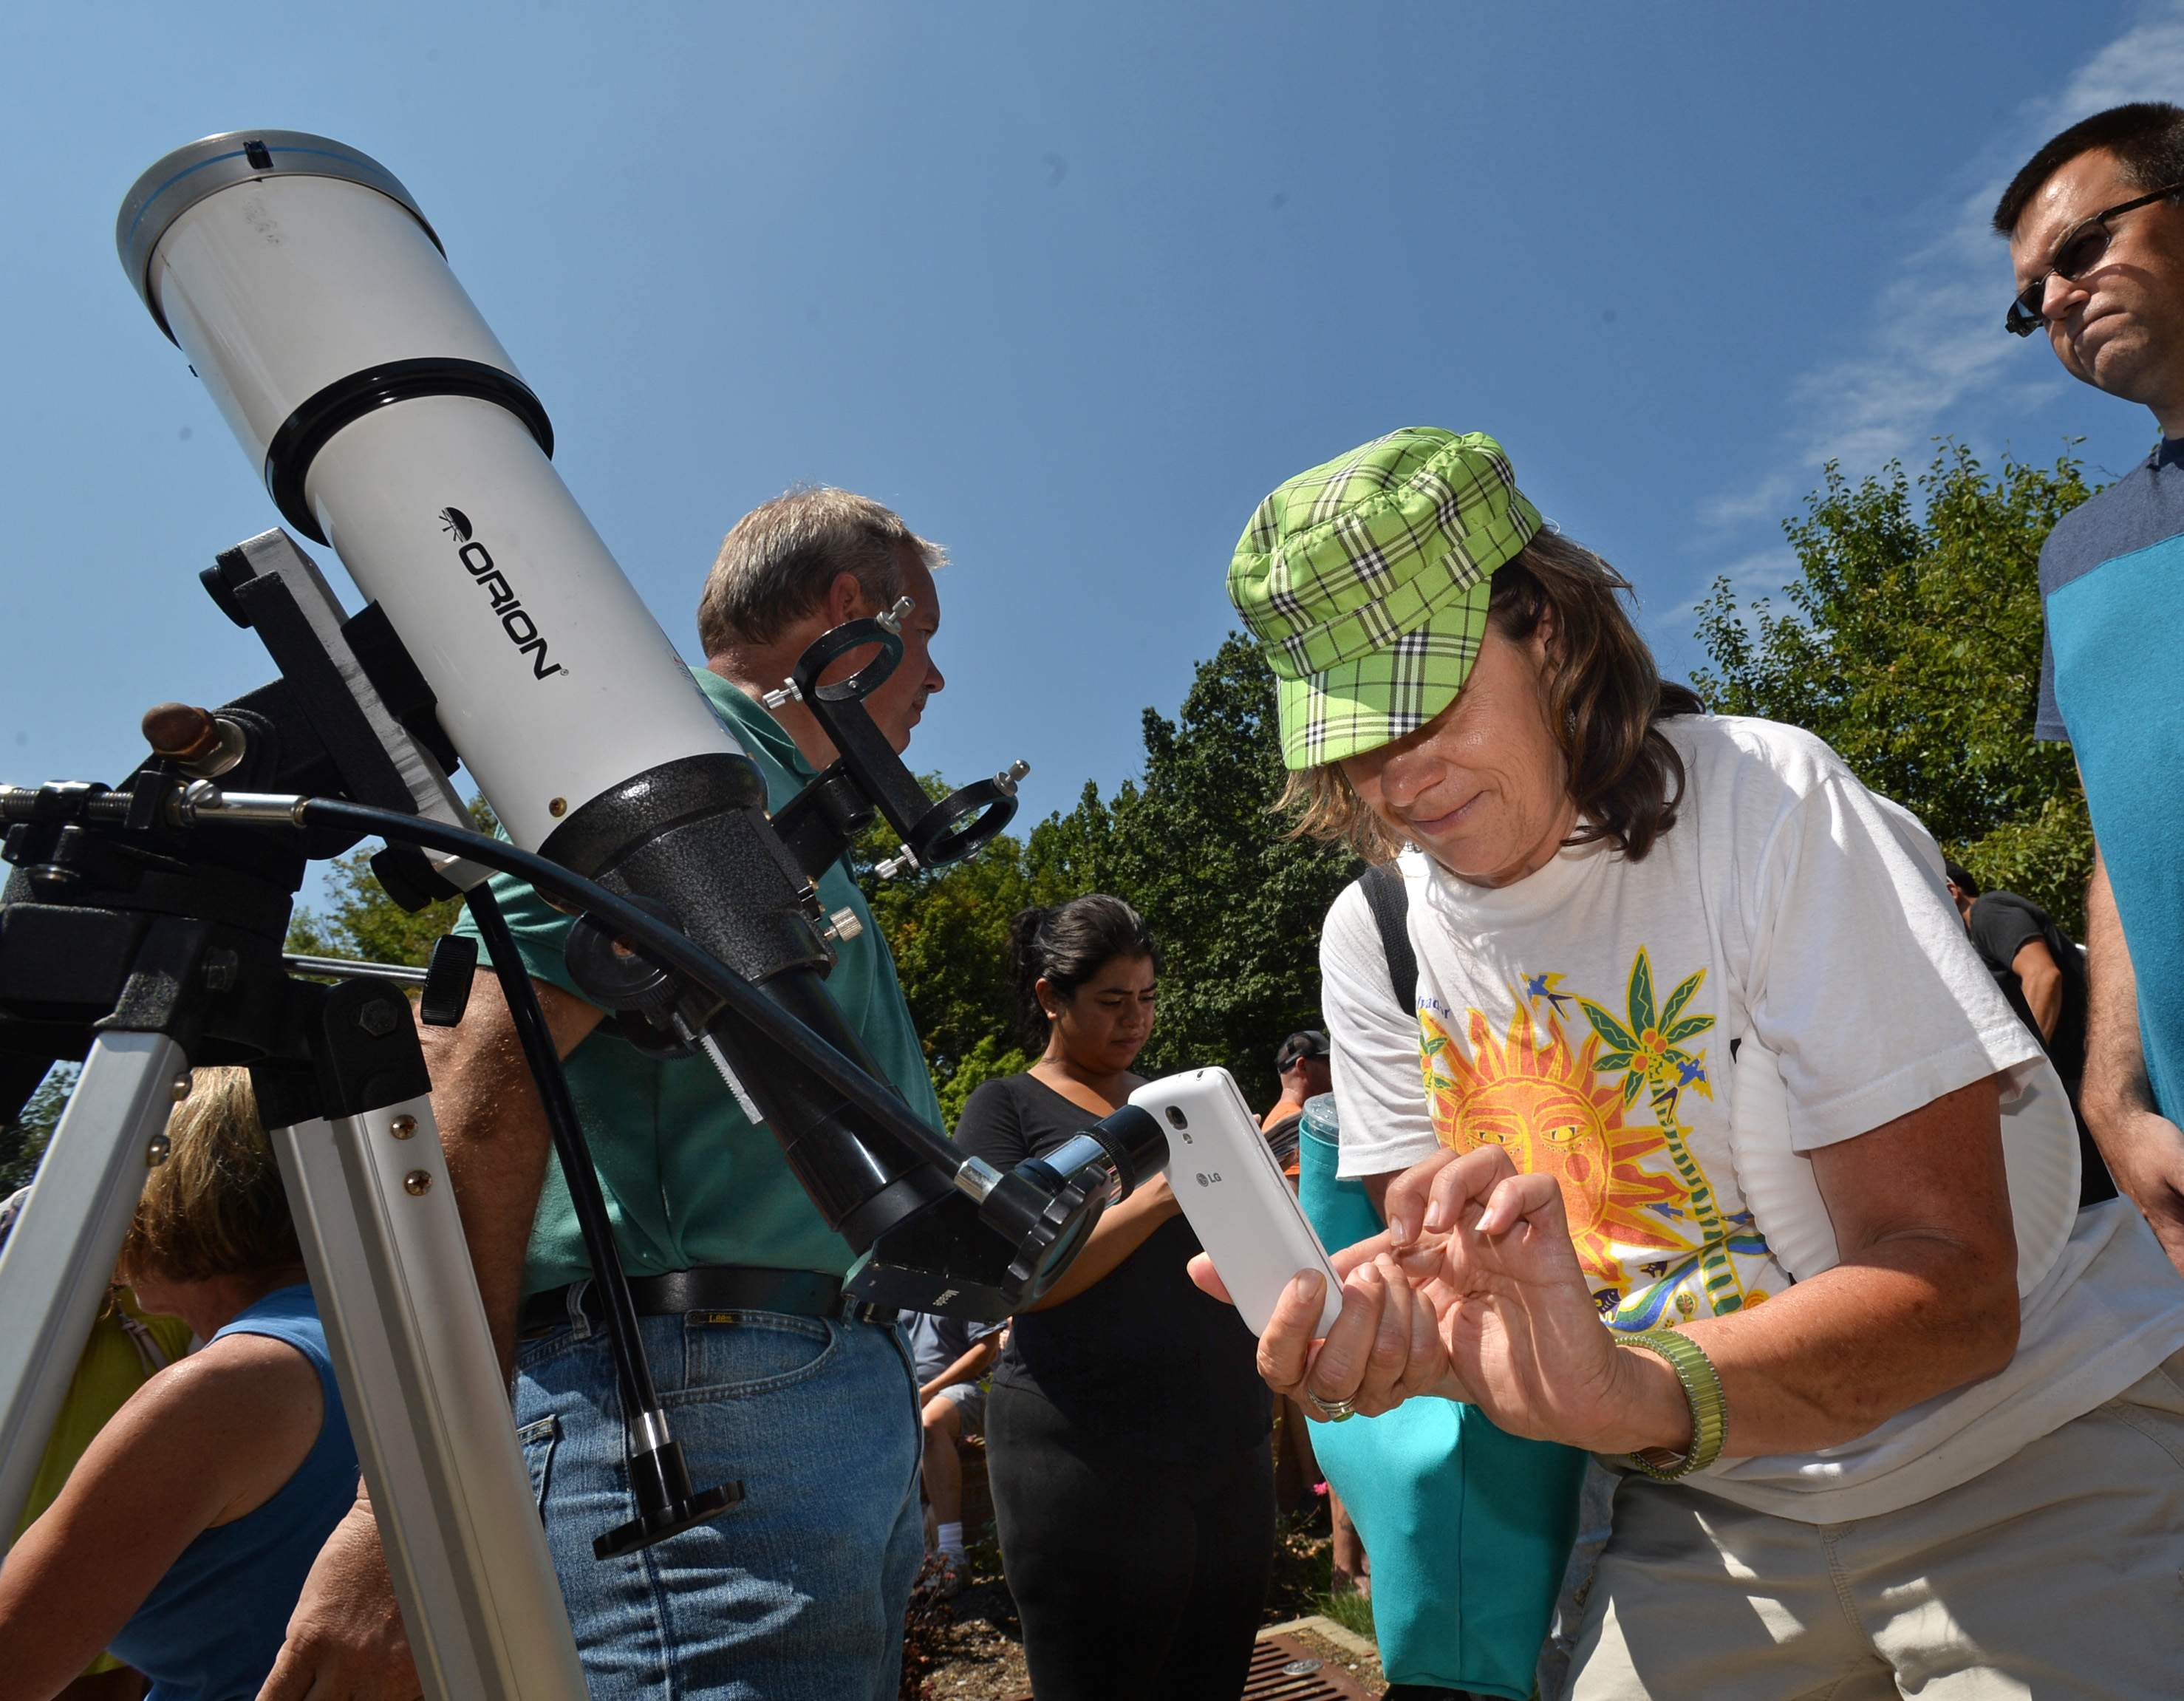 Lydia Chimenti of Erie photographs the eclipse with her smart phone Aug. 21 at an eclipse-viewing party held at Penn State Behrend in Harborcreek Township. Hundreds turned out for the event, which featured telescopes fitted with solar filters available for viewing the partial eclipse. [CHRISTOPHER MILLETTE/ERIE TIMES-NEWS]